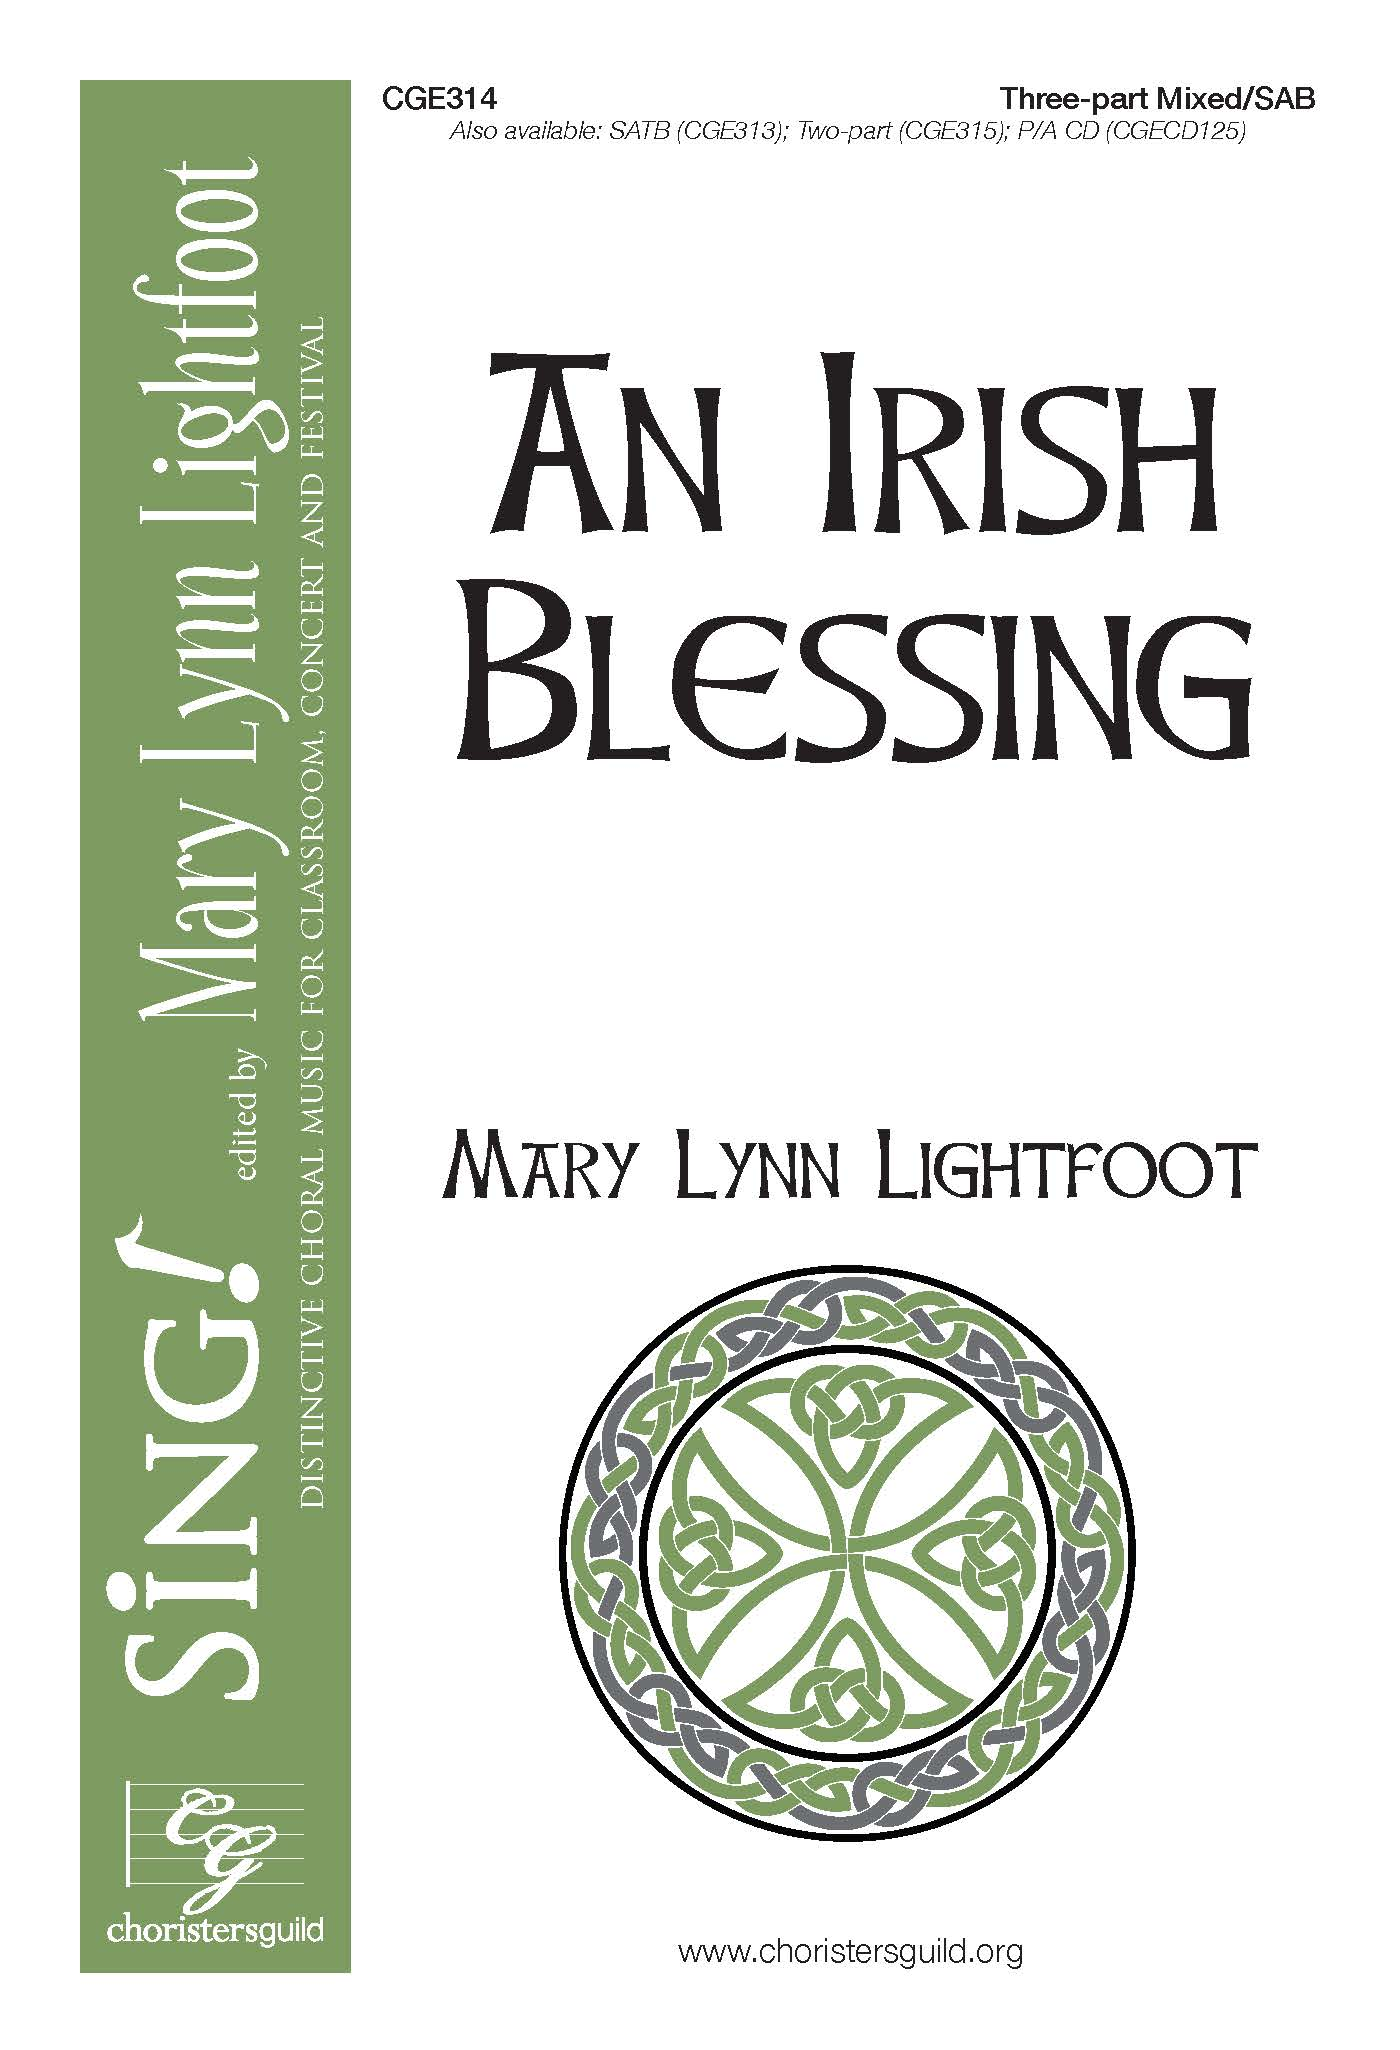 An Irish Blessing - Three-part Mixed/SAB